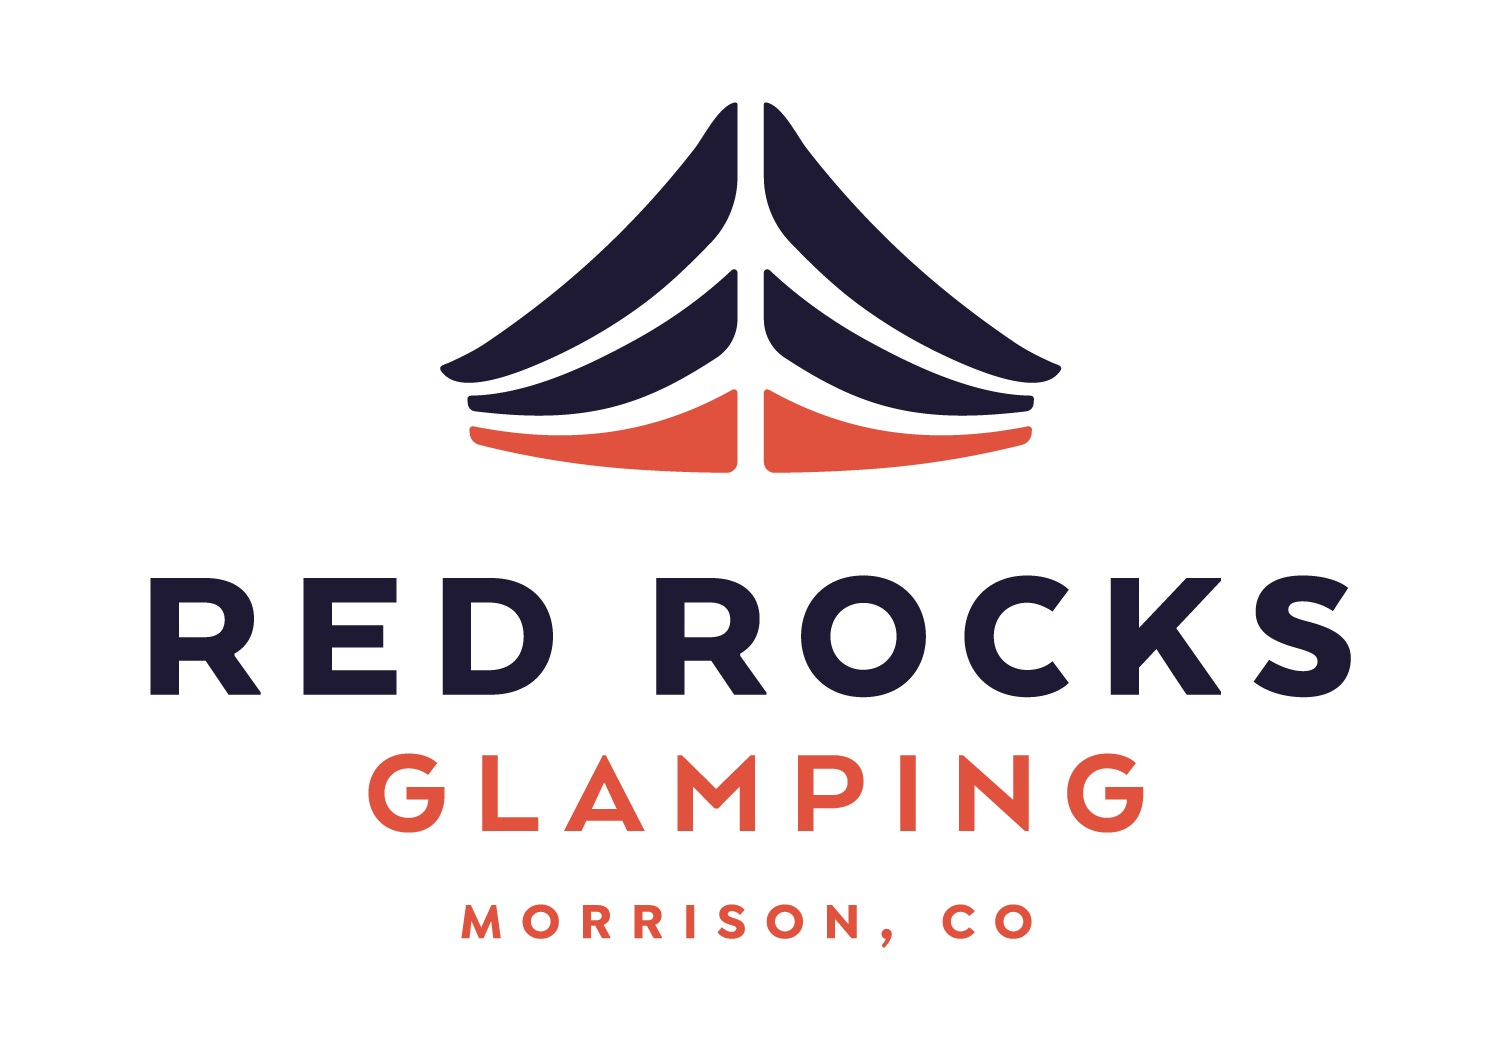 RED ROCKS GLAMPING